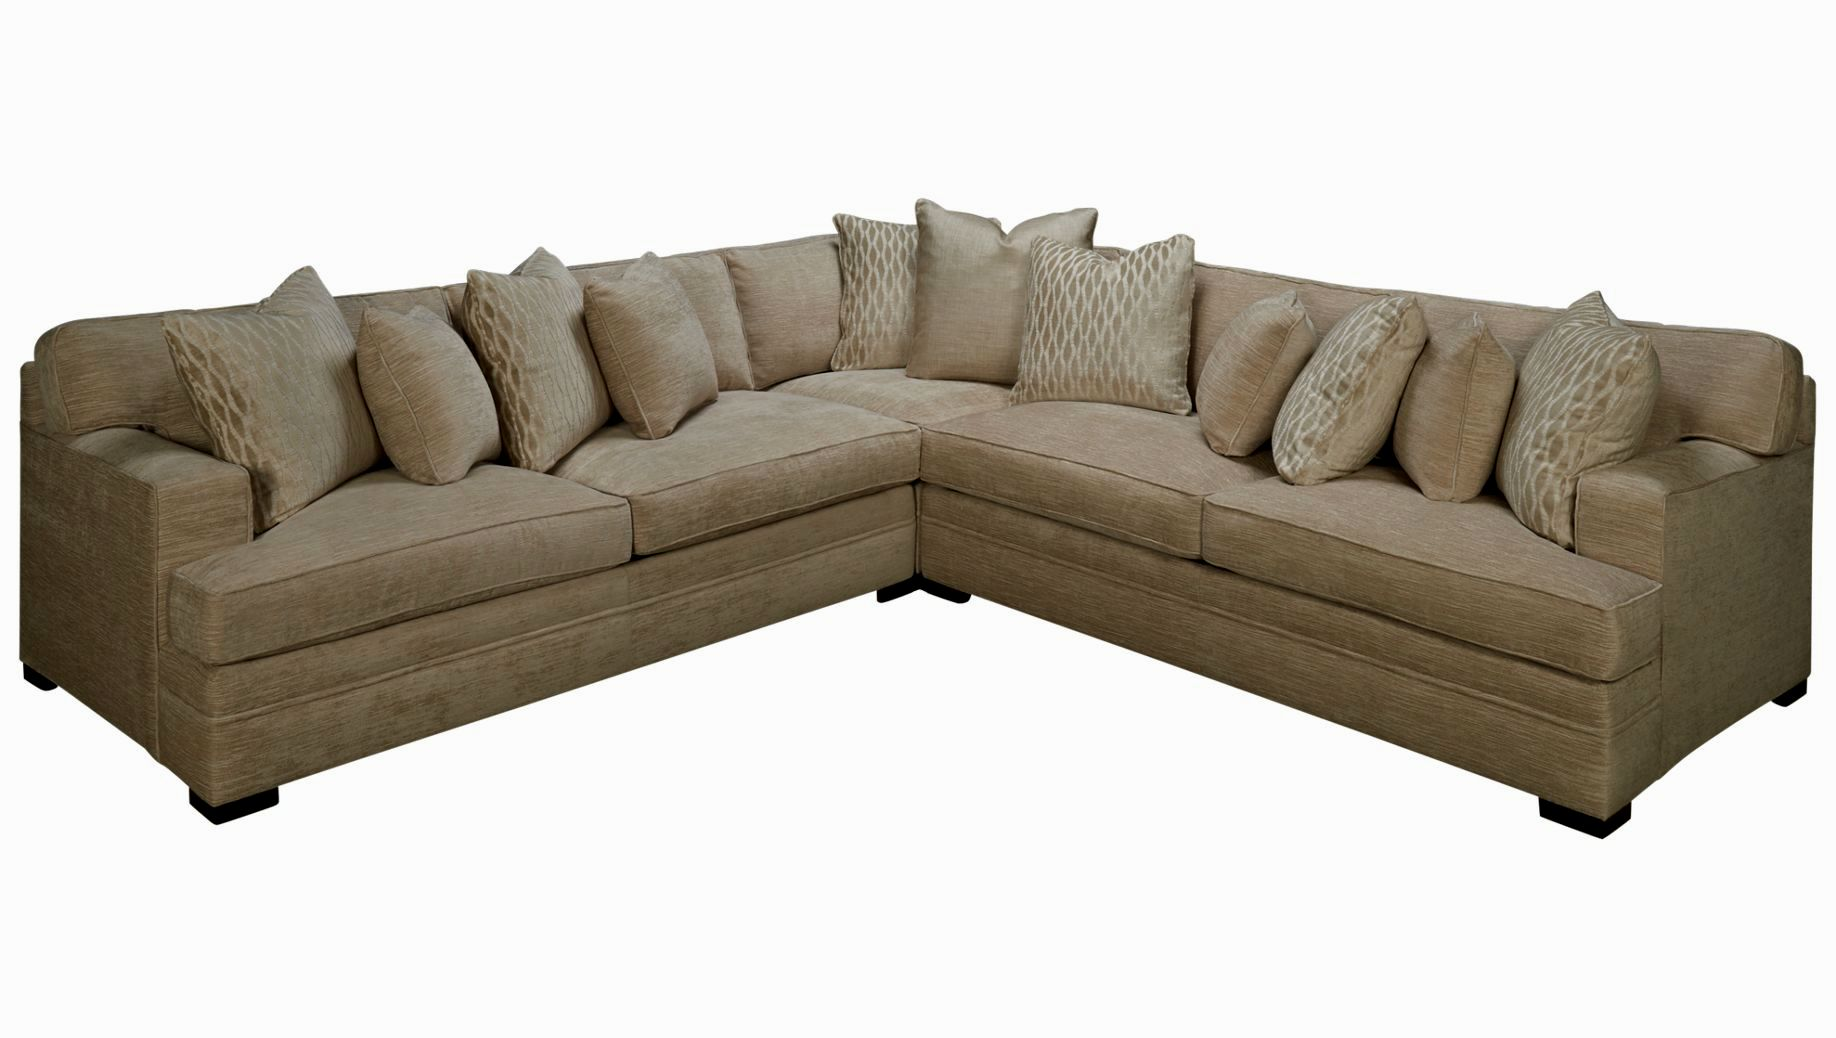 lovely sectional pit sofa collection-Terrific Sectional Pit sofa Concept